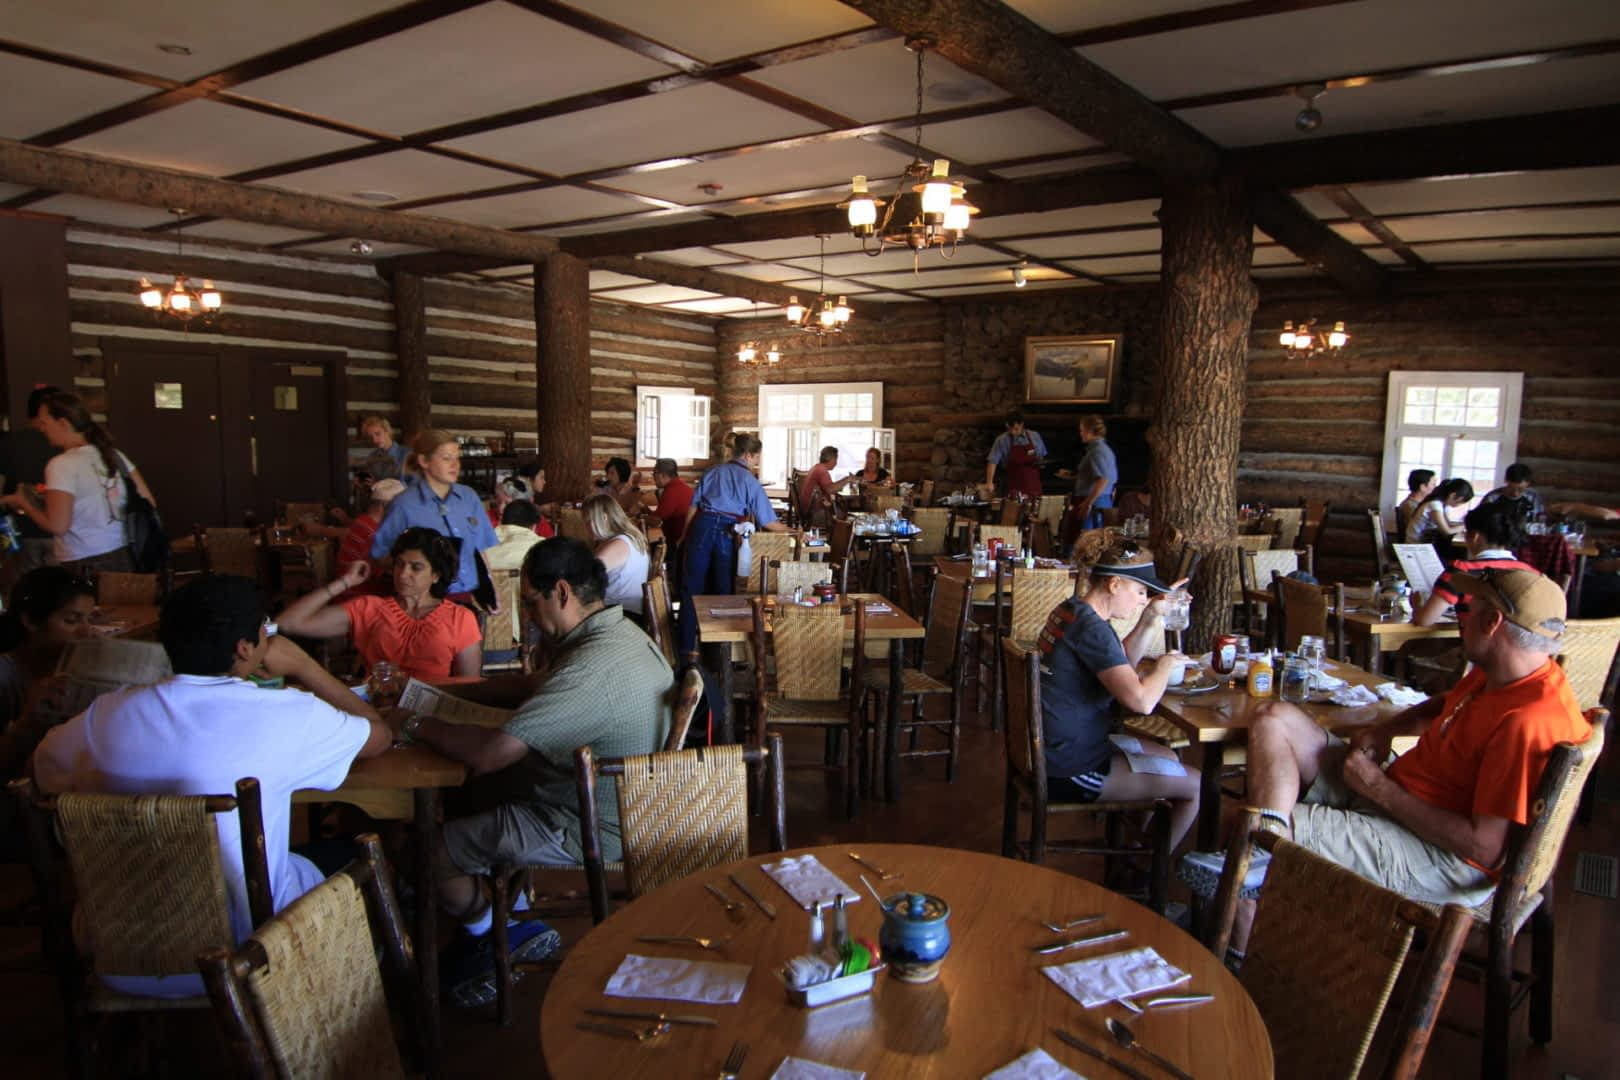 Old Faithful Inn Closed For 2020 Yellowstone Park Concessions Will Be Severely Limited Buckrail Jackson Hole News